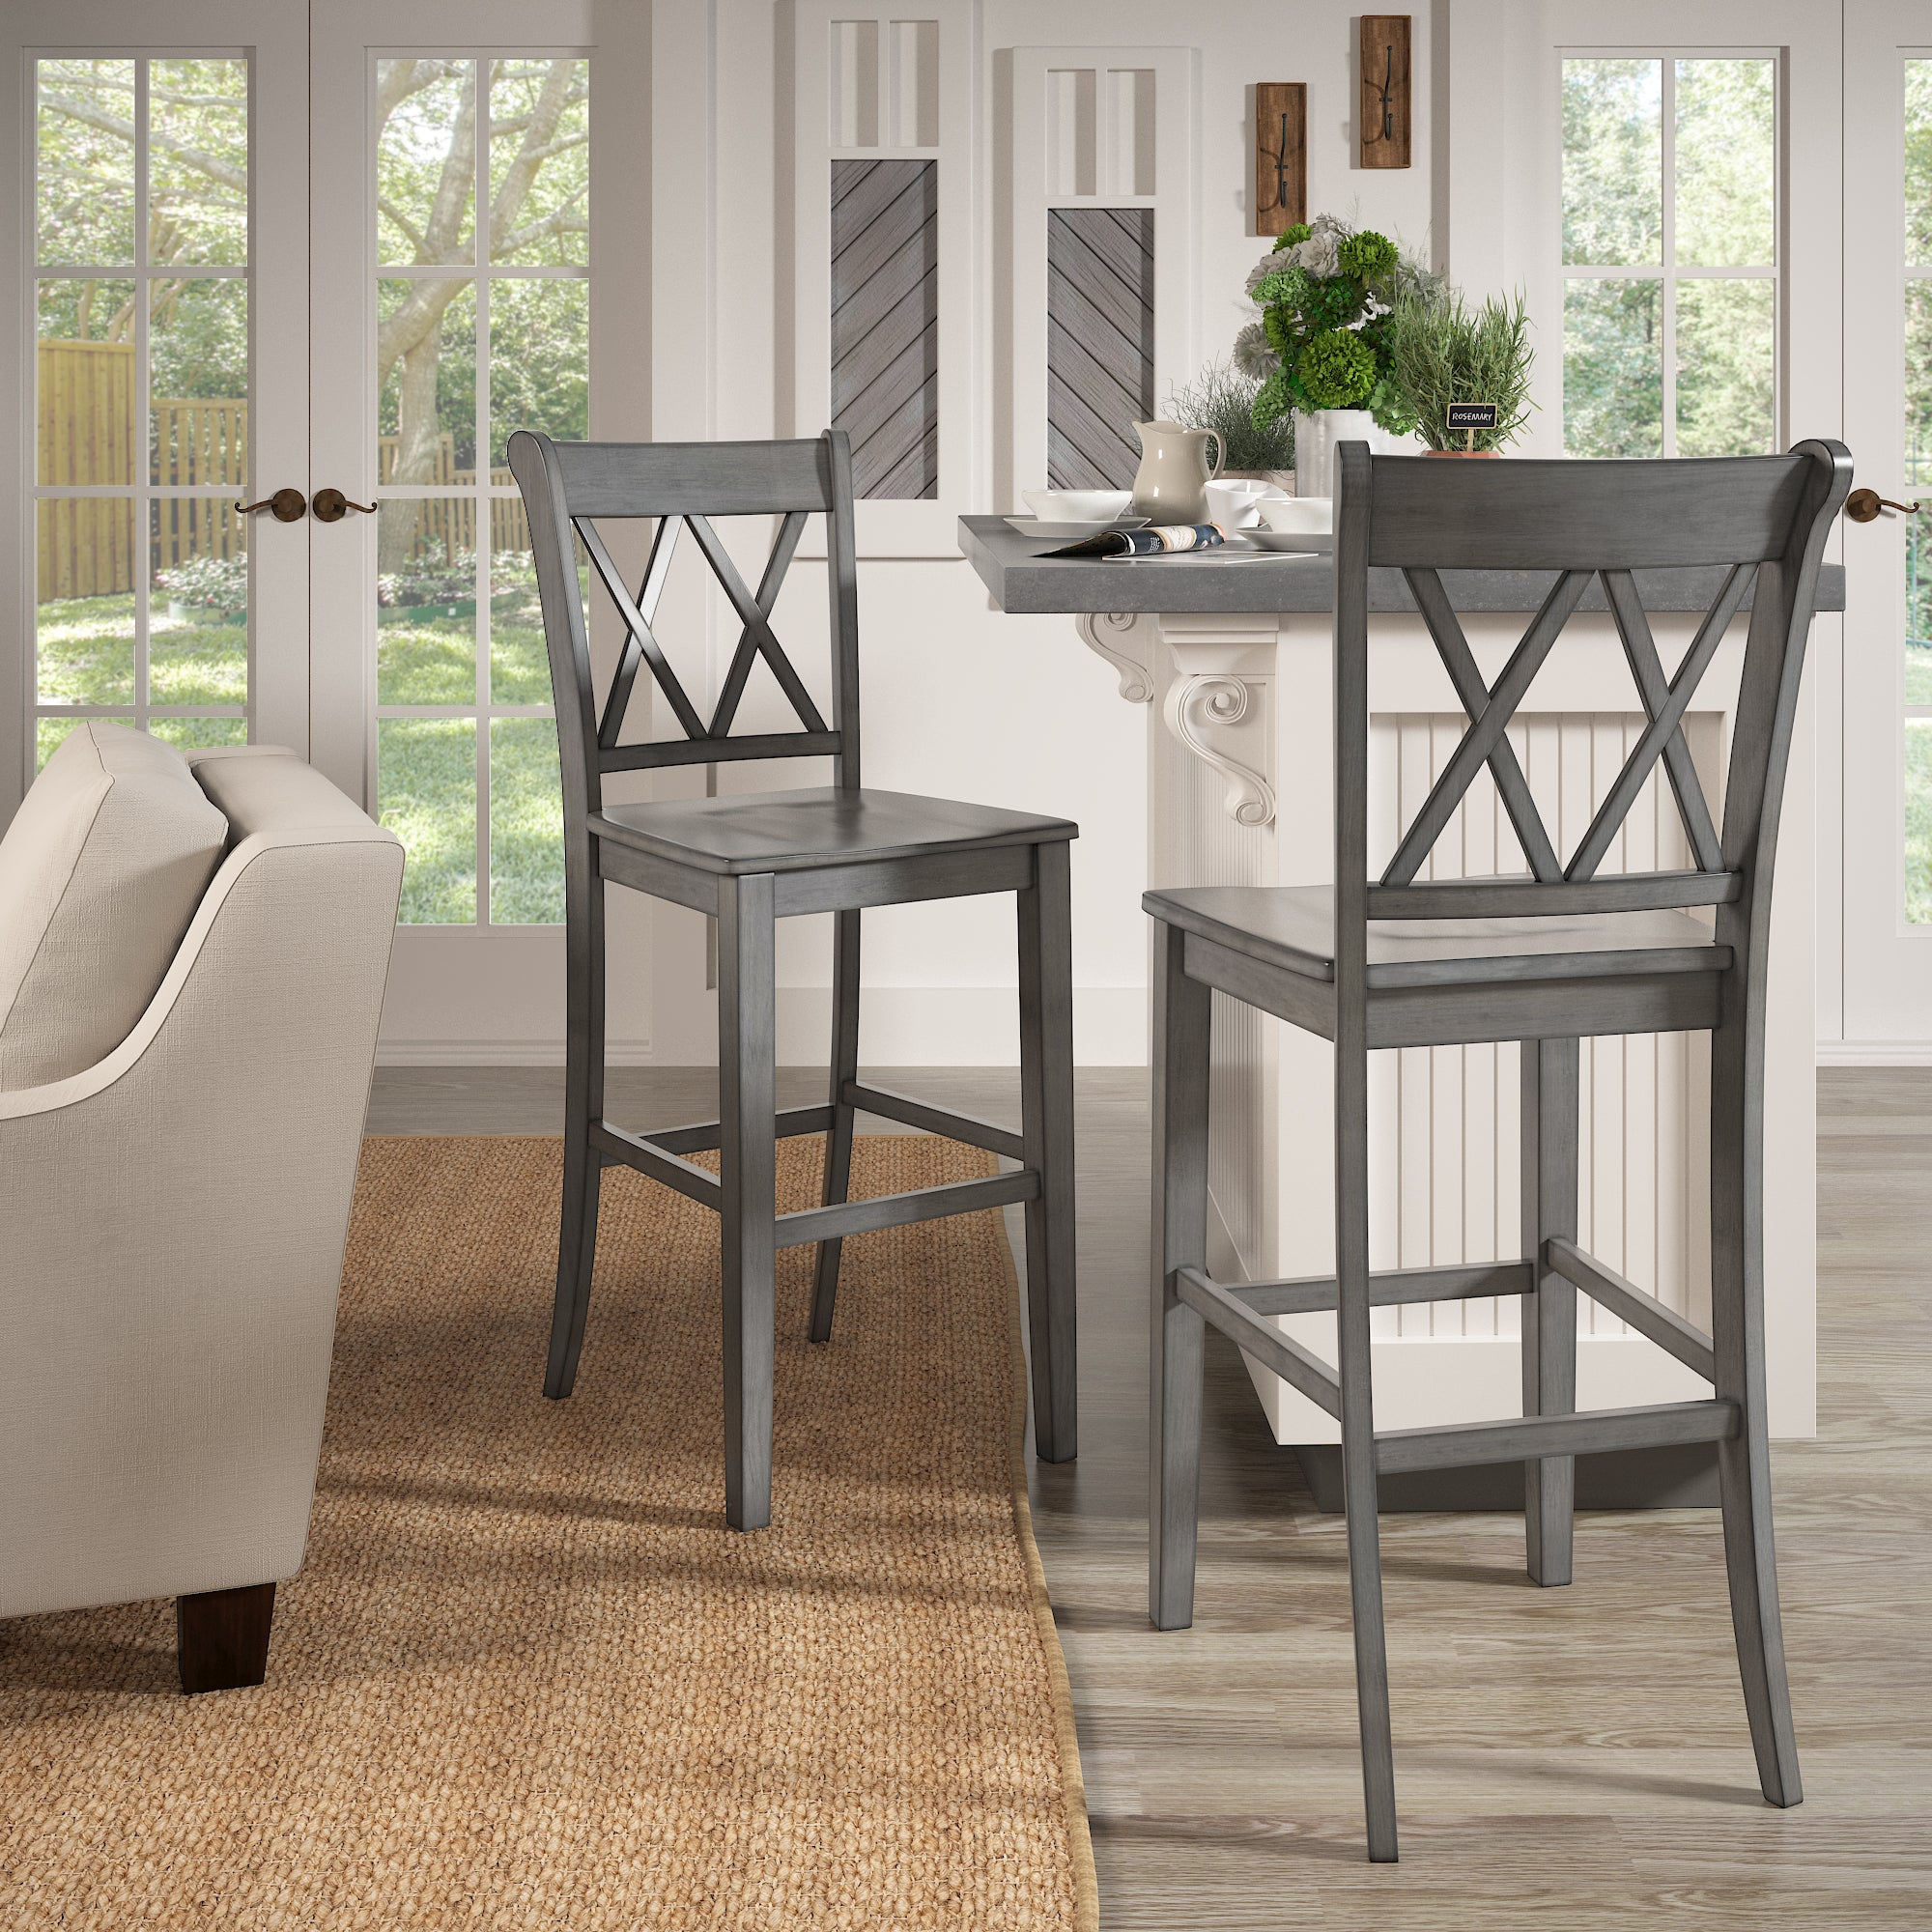 Double X Back Bar Height Chairs (Set of 2) - Antique Grey Finish